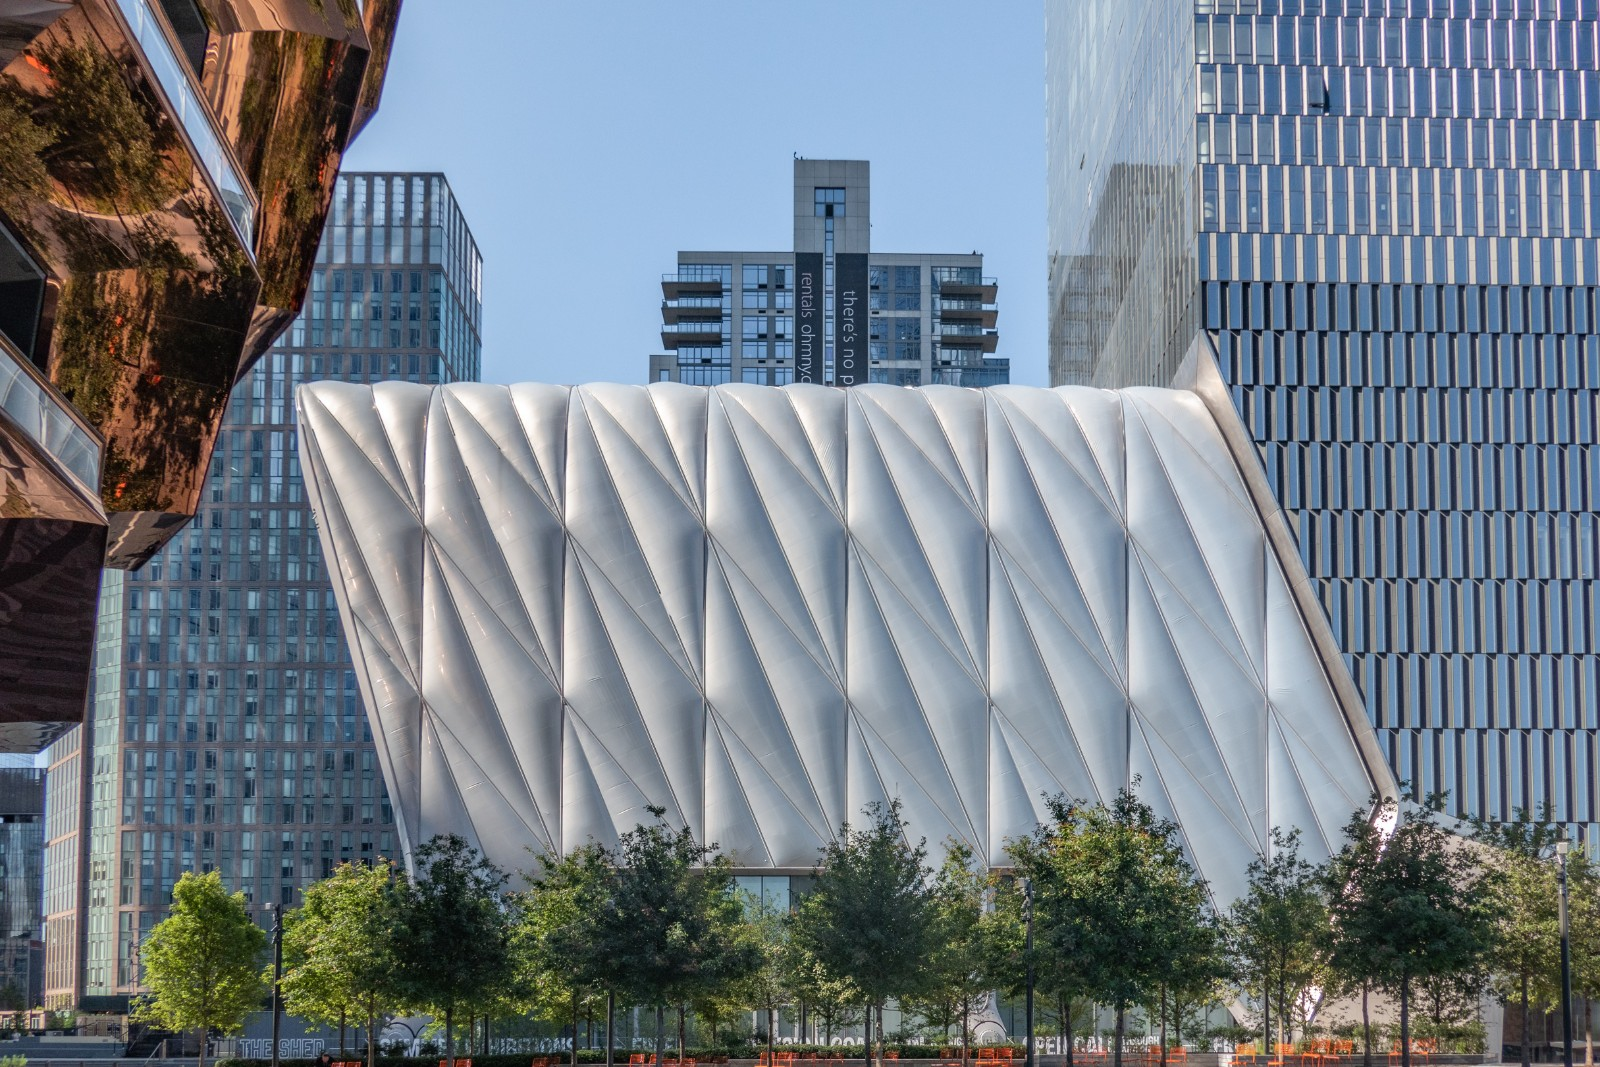 The Shed performing arts center at Hudson Yards